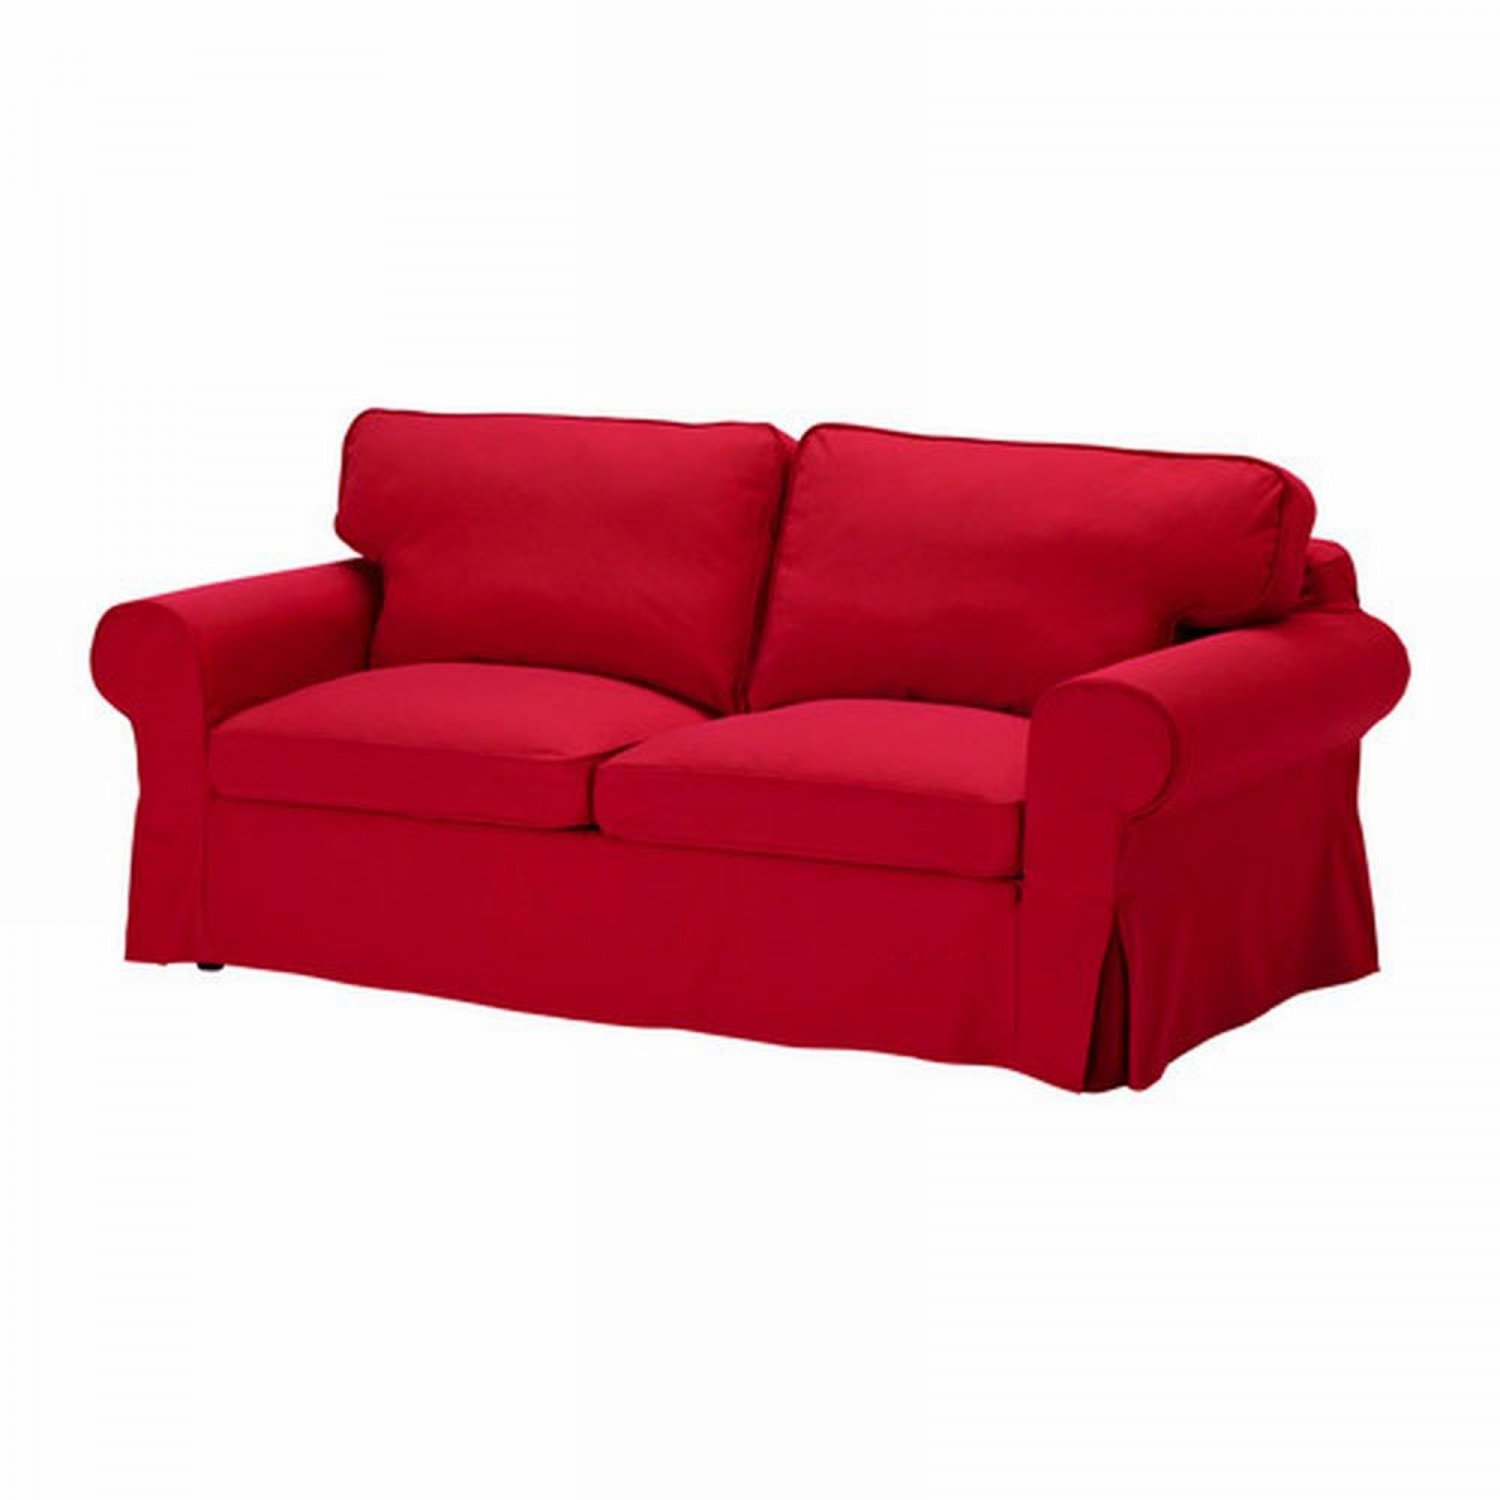 IKEA EKTORP Sofa Bed SLIPCOVER Cover IDEMO RED Sofabed Cvr : 55aad61d1d41c54622b from www.ecrater.com size 1500 x 1500 jpeg 74kB